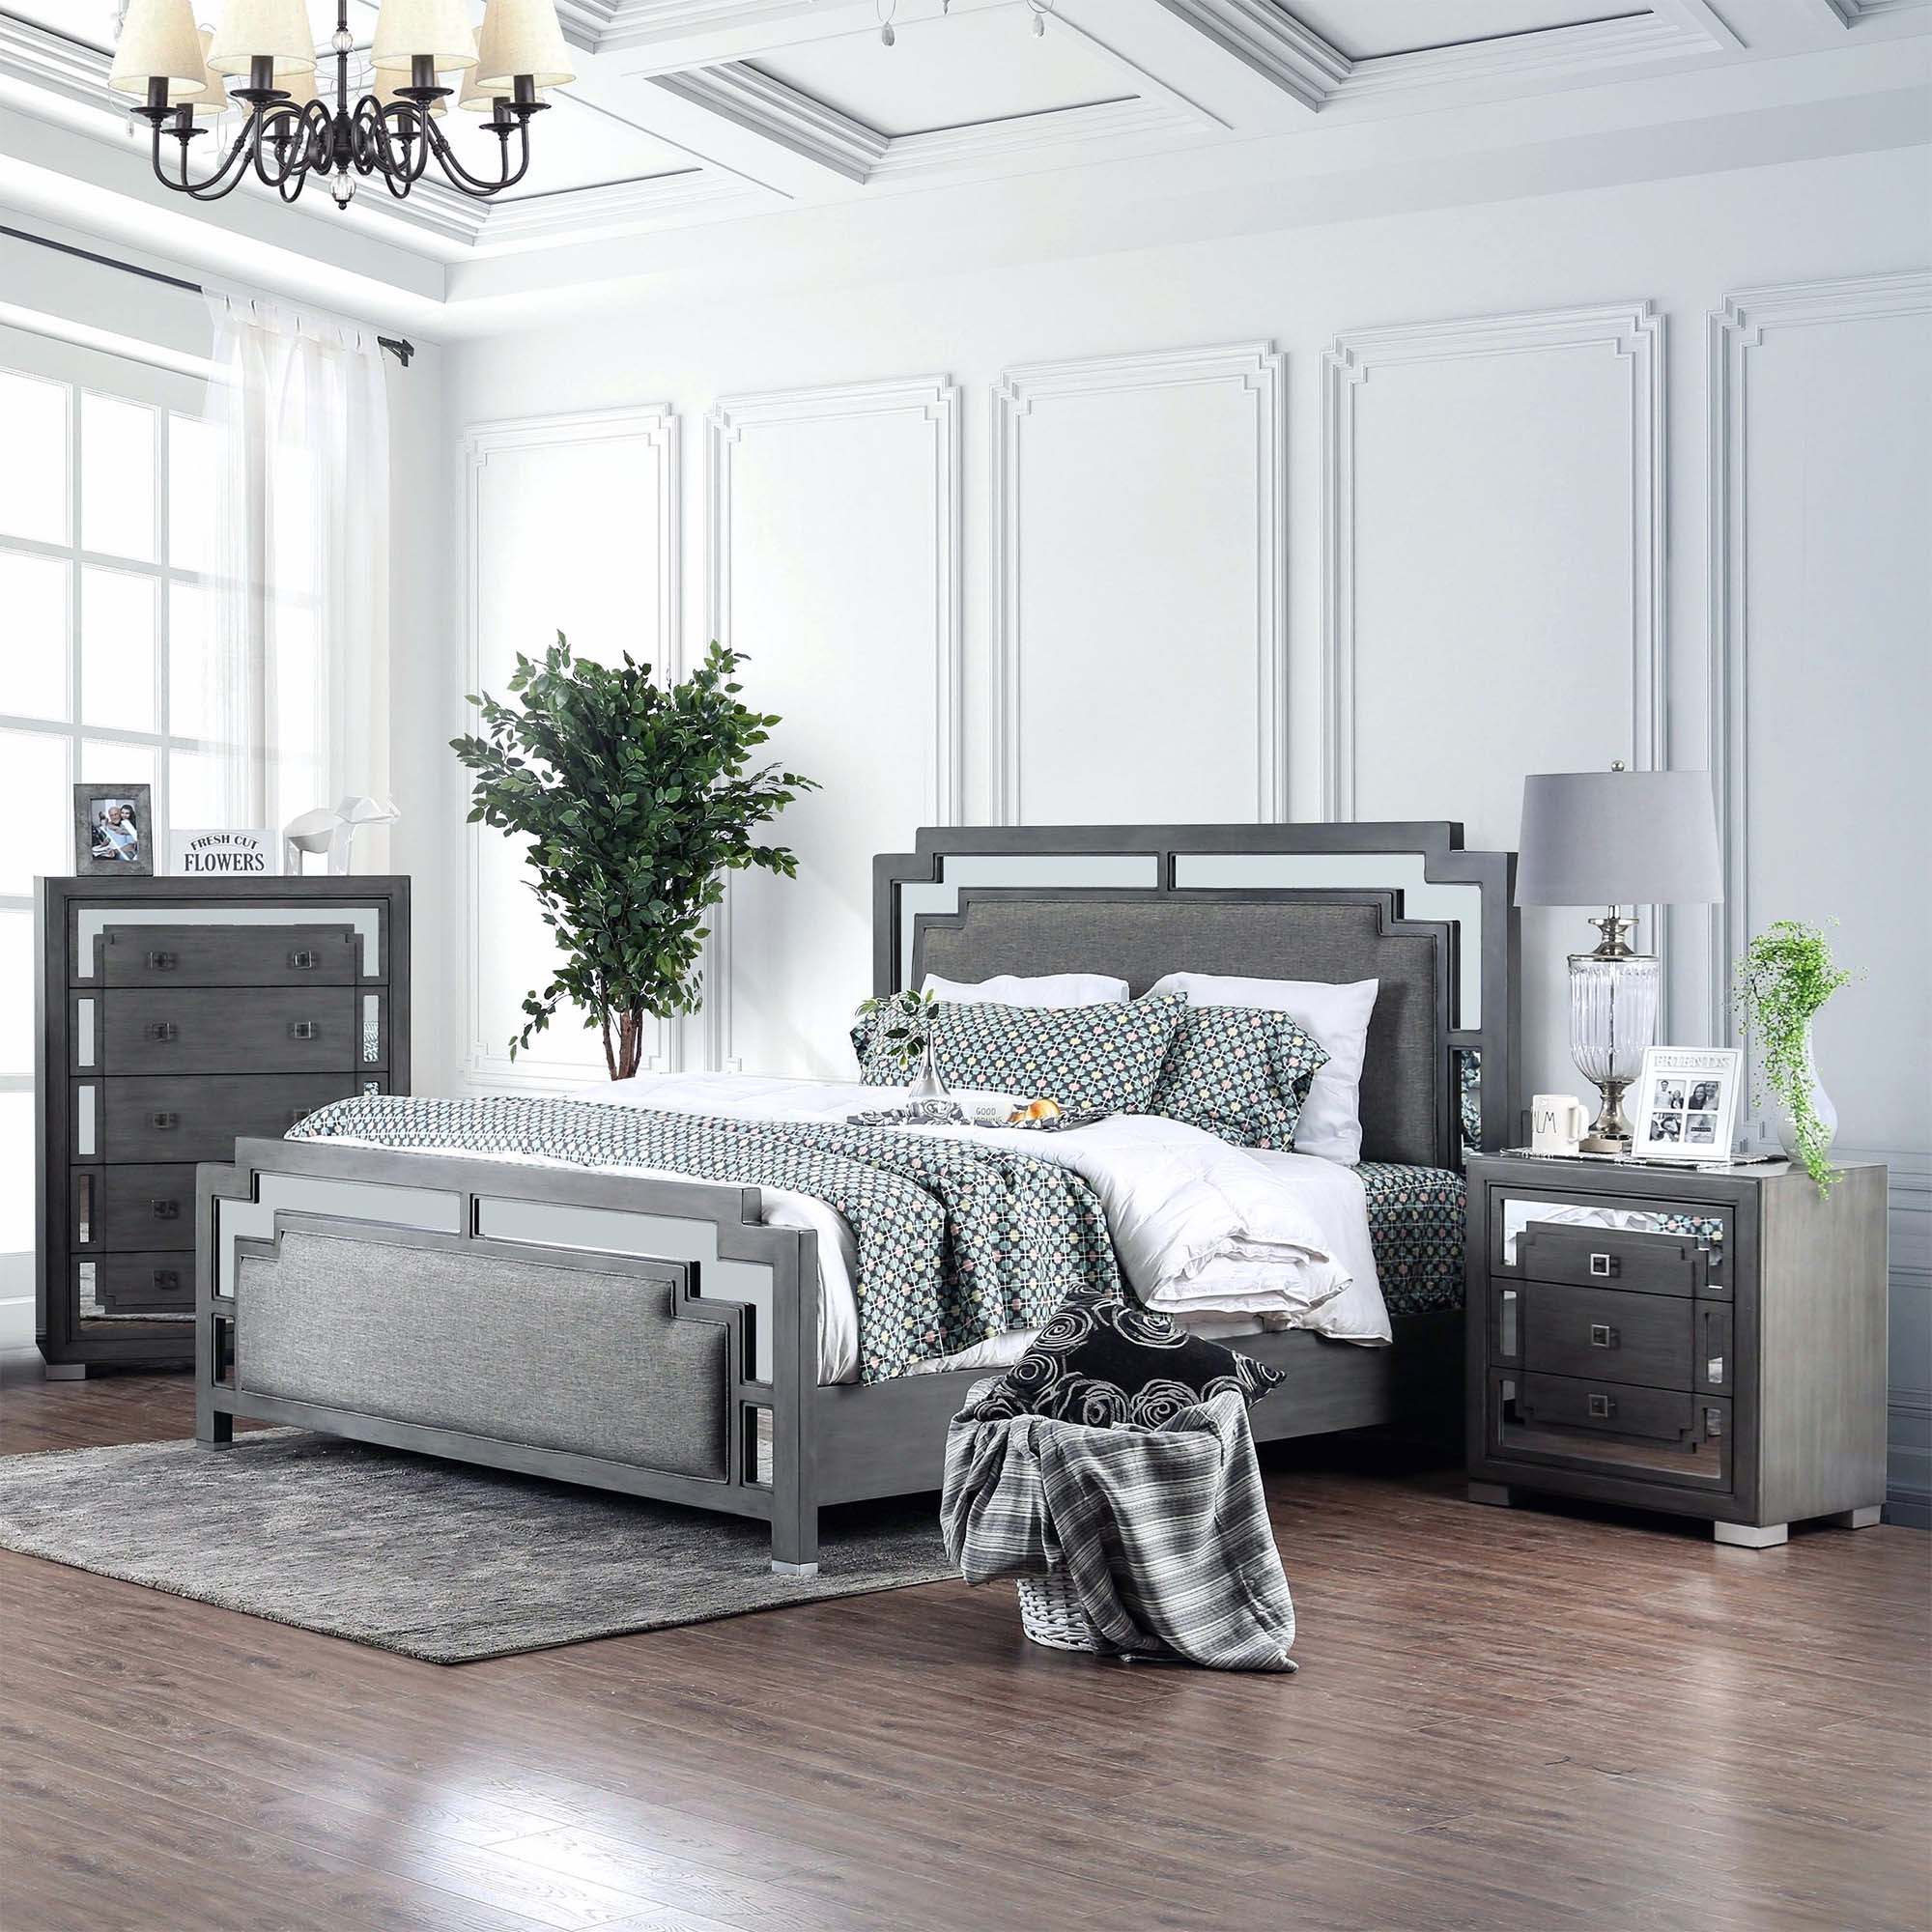 Master Bedroom Design Ideas, Tips and Photos for 2019 ... on Master Bedroom Ideas  id=73855